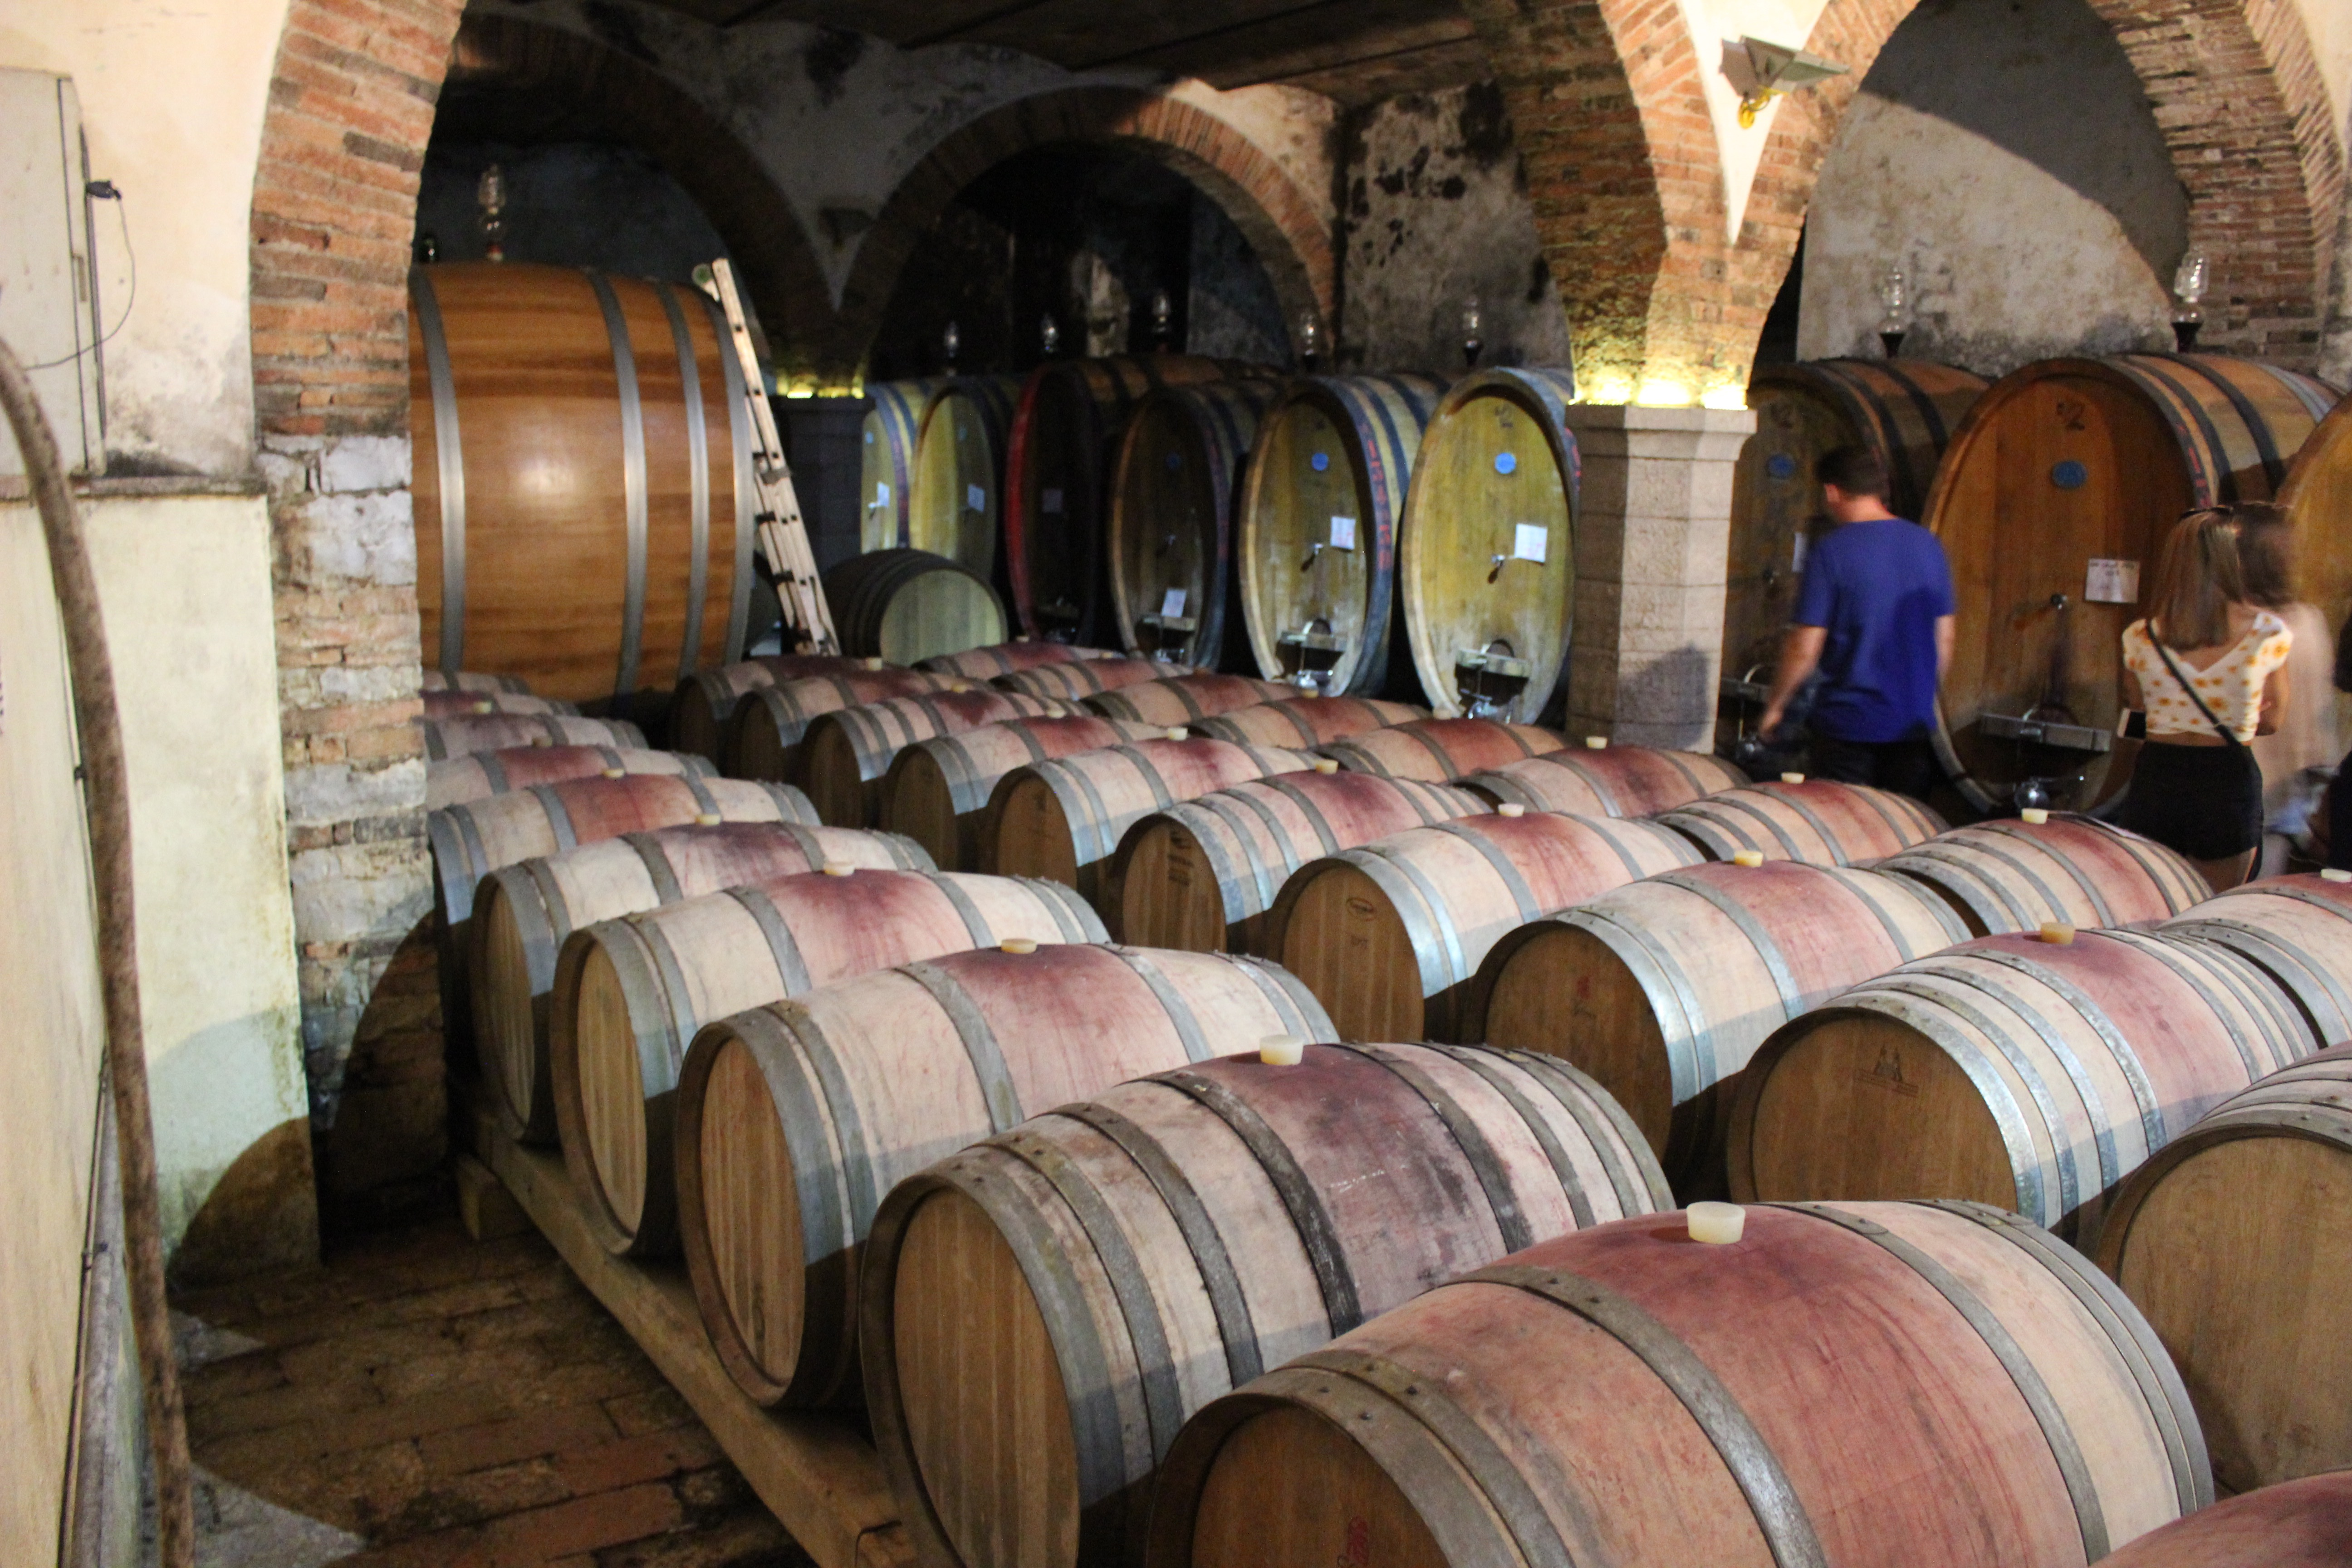 Oak barrels of varying sizes line the inside of the building